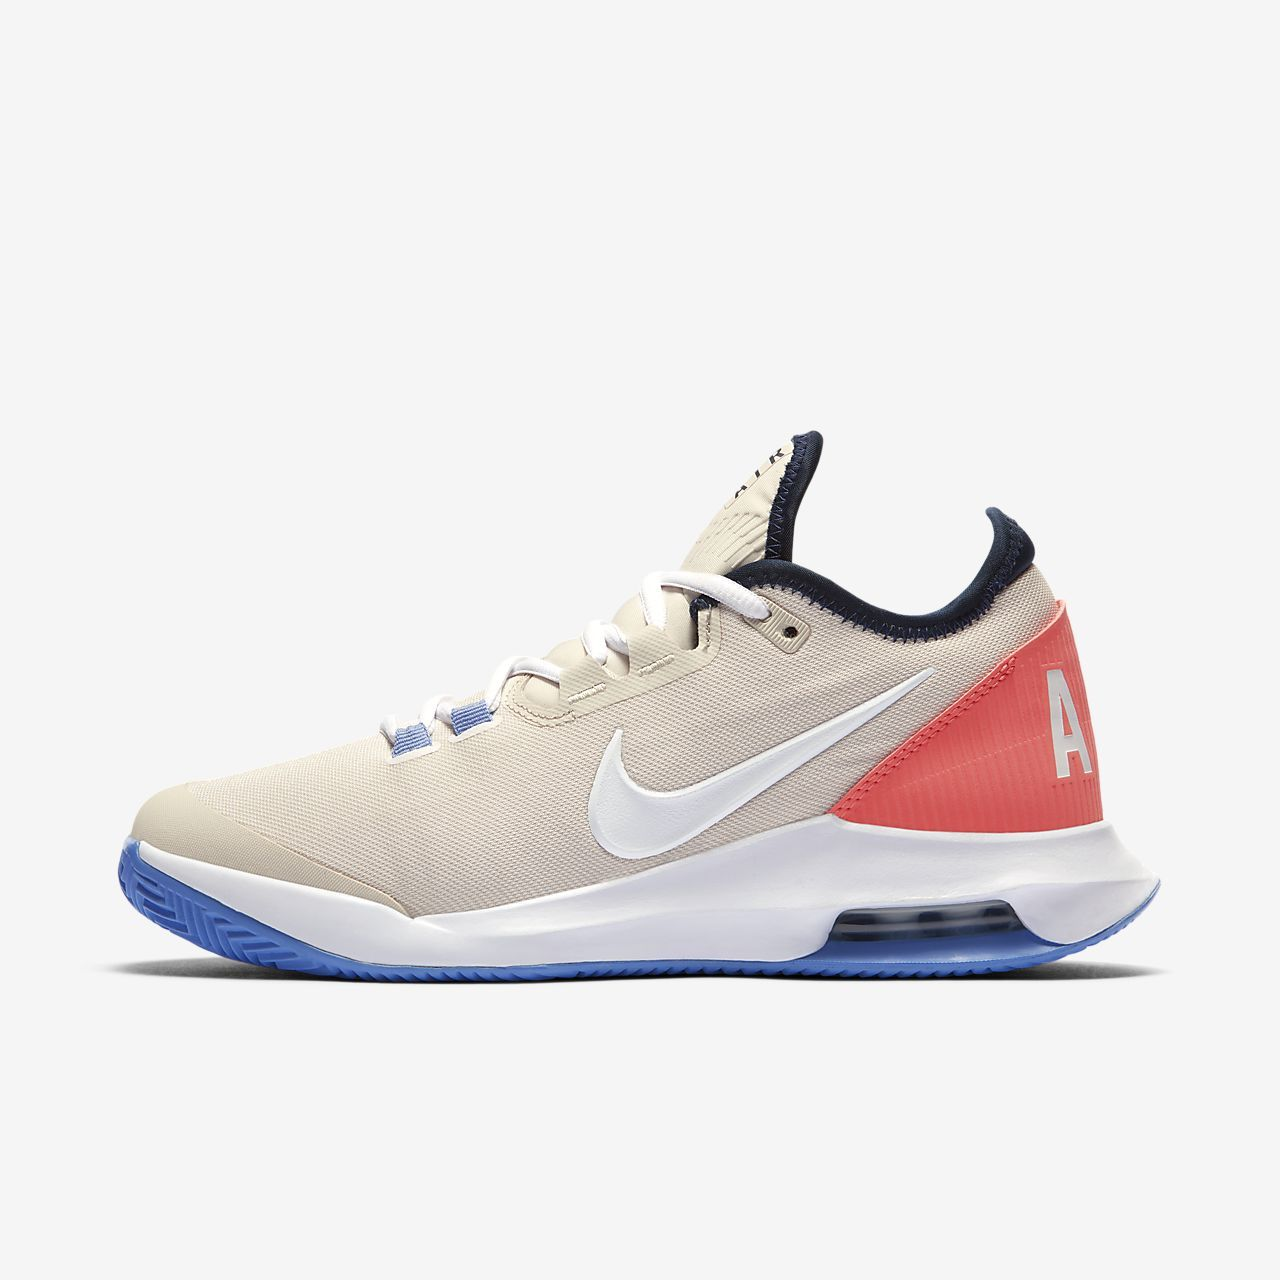 Nikecourt Air Max Wildcard Women S Clay Tennis Shoe Nike Ca In 2020 Tennis Shoes Air Max Air Max Sneakers